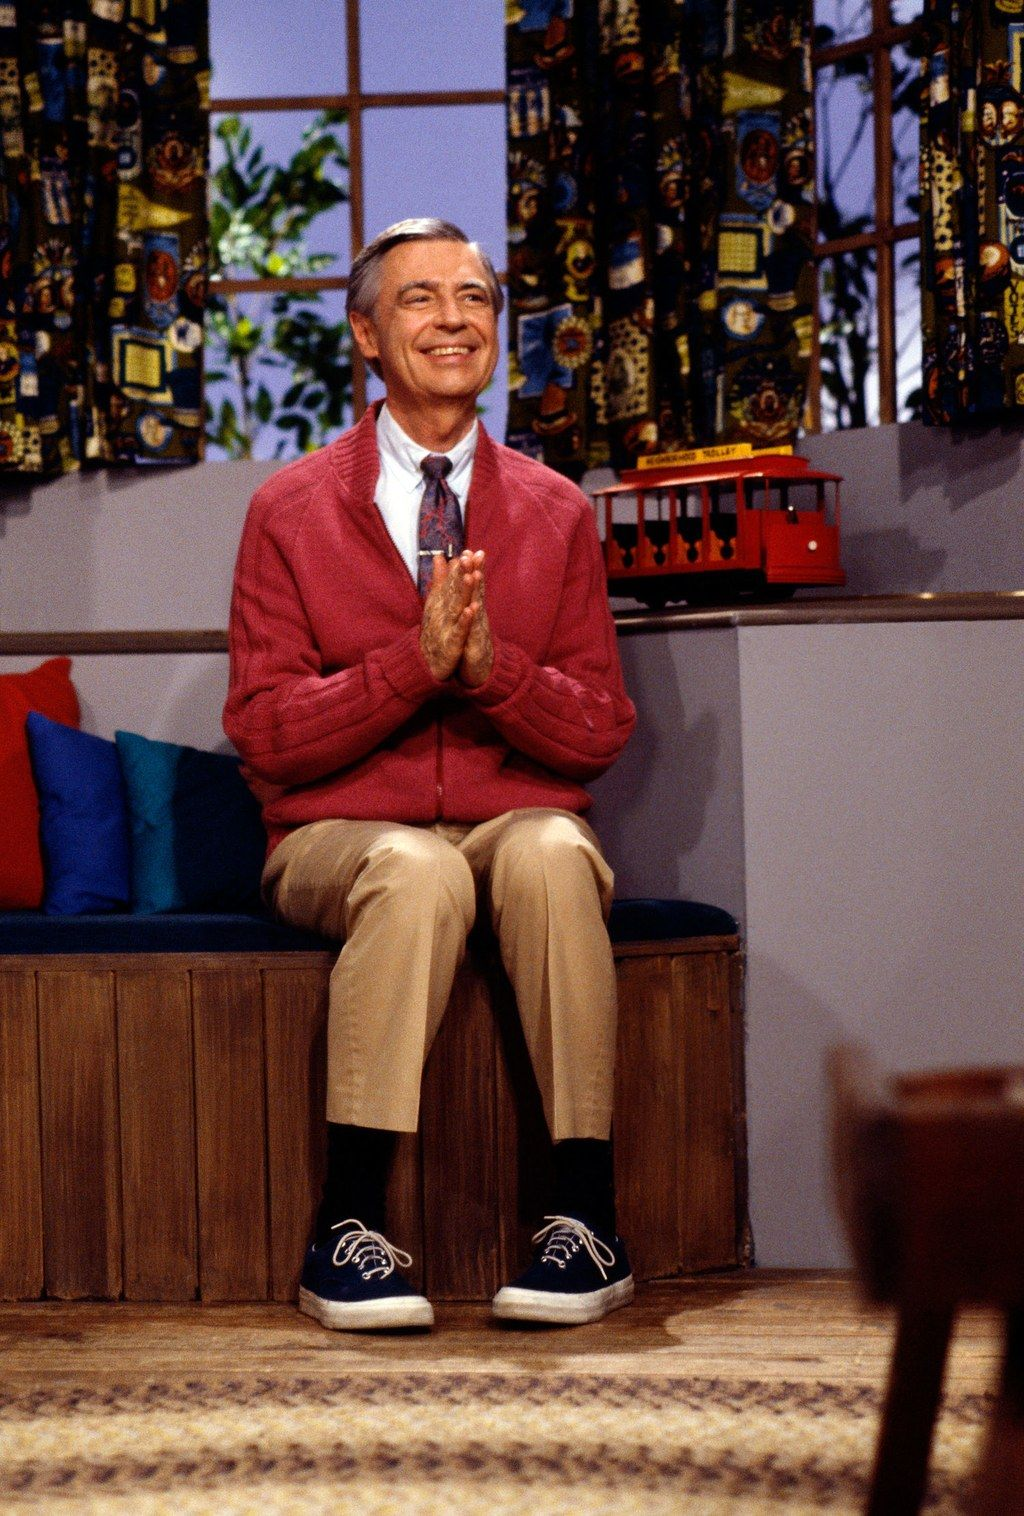 Mr. Rogers Neighborhood PBS